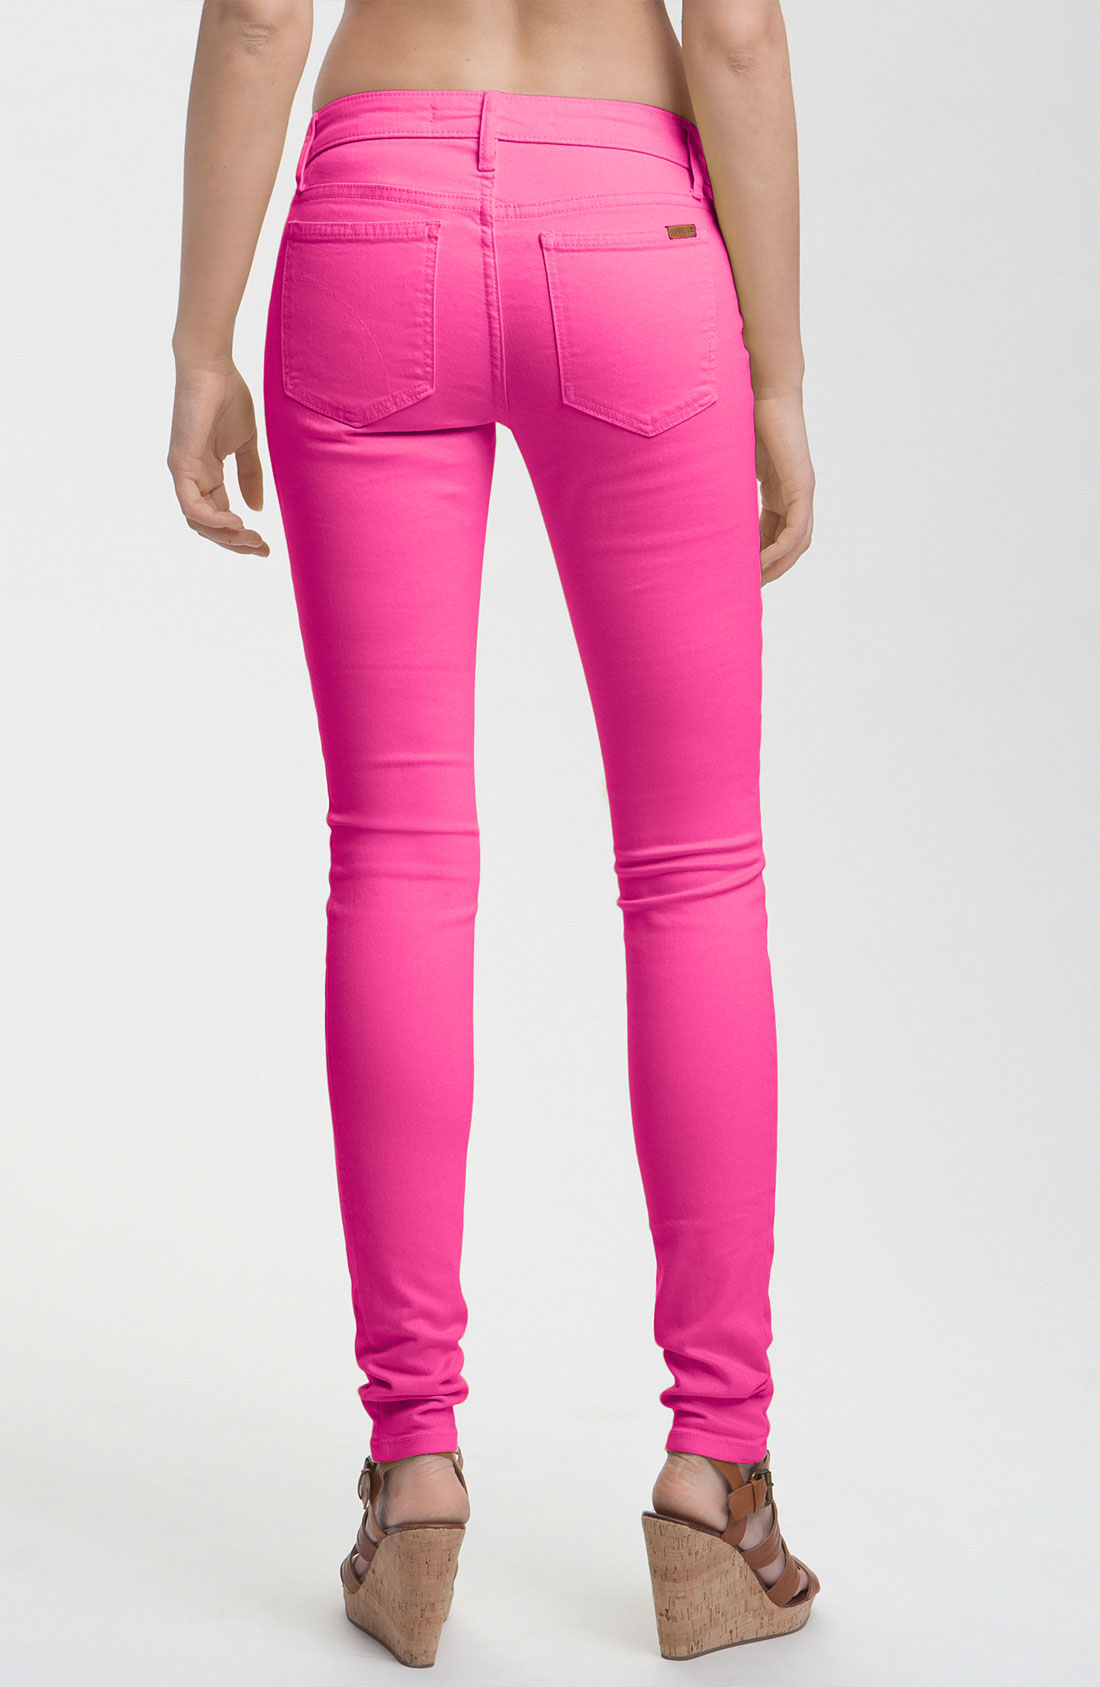 Shop Target for Pink Pants you will love at great low prices. Spend $35+ or use your REDcard & get free 2-day shipping on most items or same-day pick-up in store.